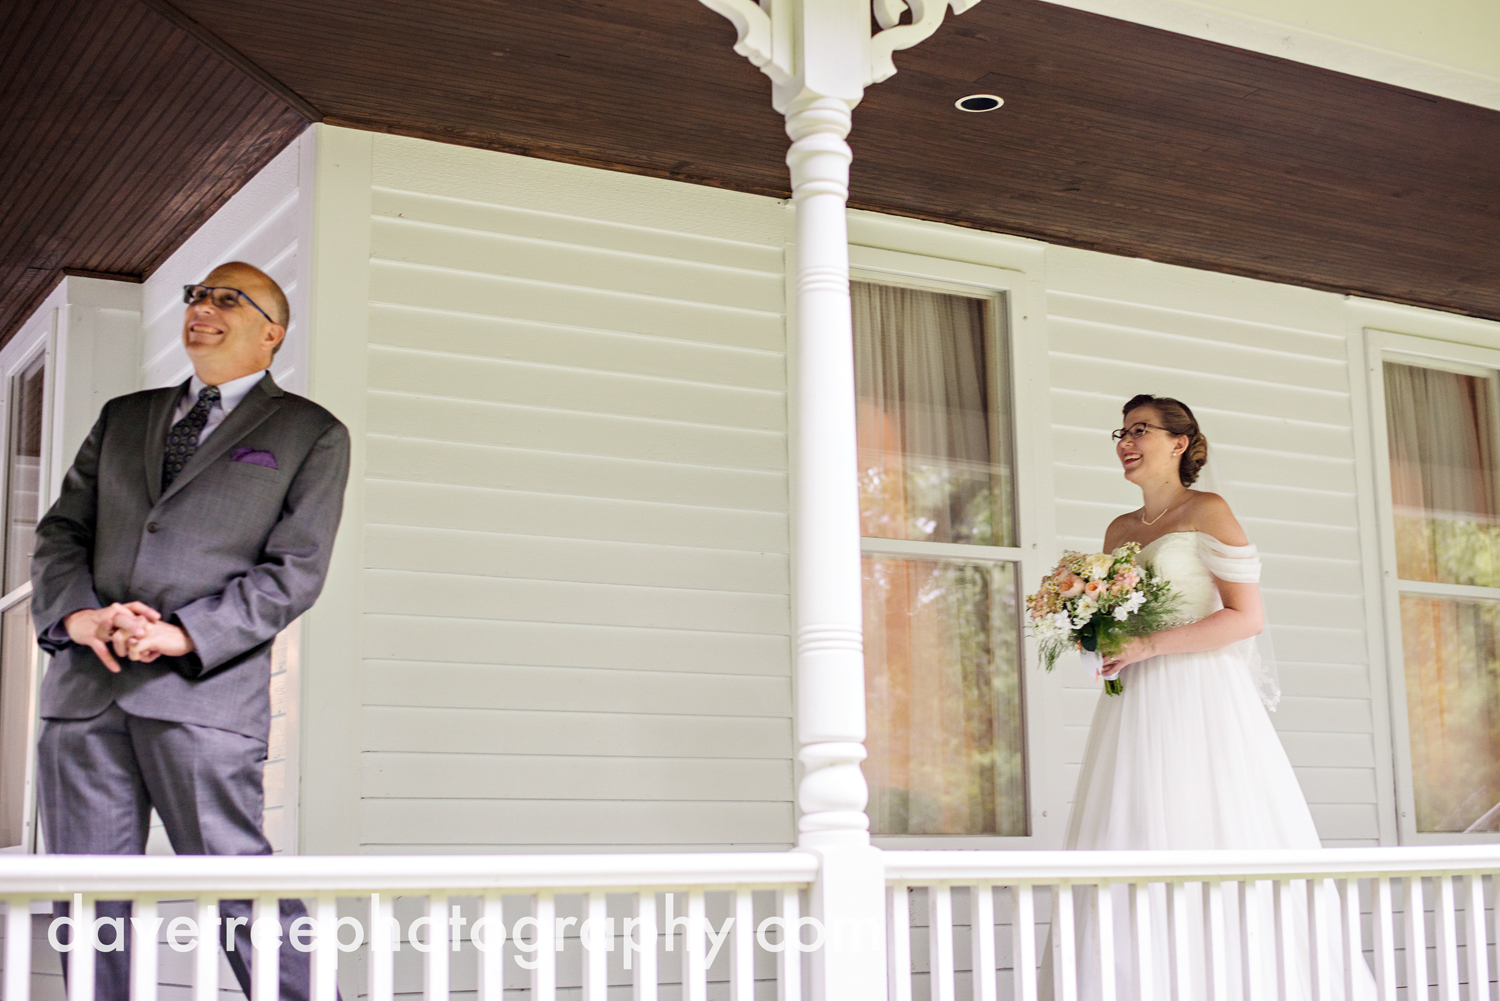 grand_haven_wedding_photographer_weaver_house_wedding_159.jpg